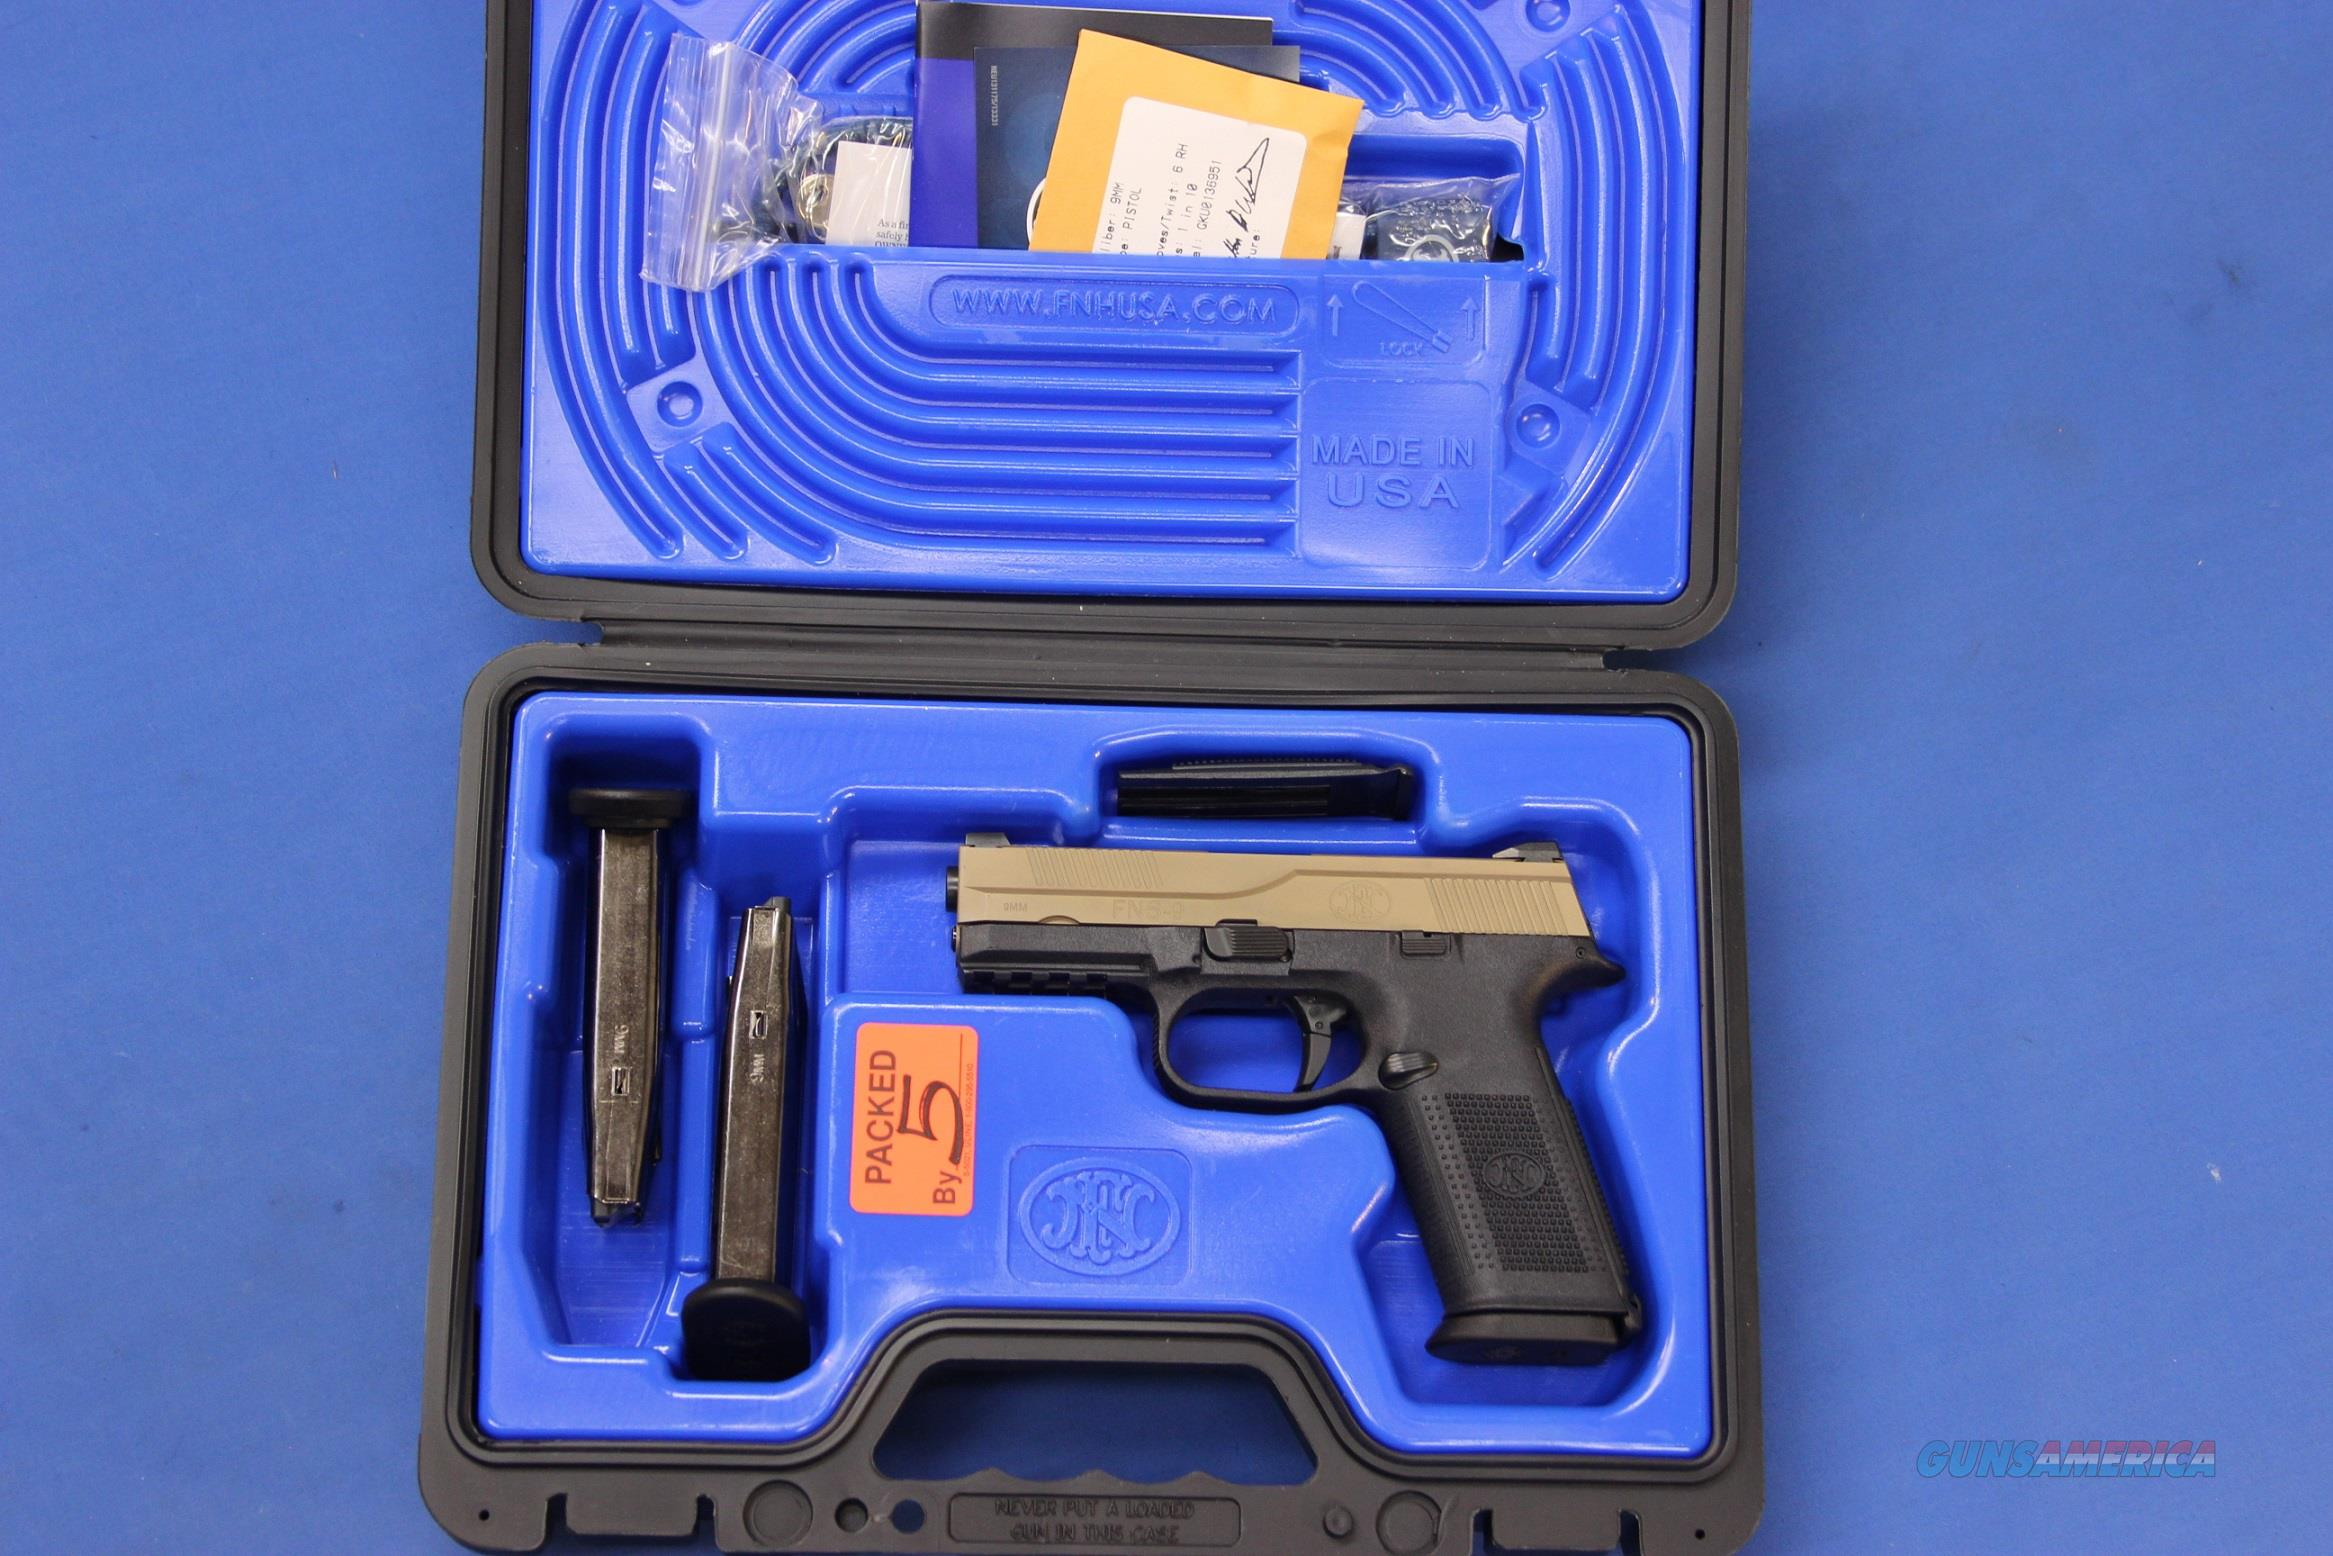 FNH FNS-9 FDE 9mm w/BOX, 3 MAGS, & ACCESSORIES  Guns > Pistols > FNH - Fabrique Nationale (FN) Pistols > FNS